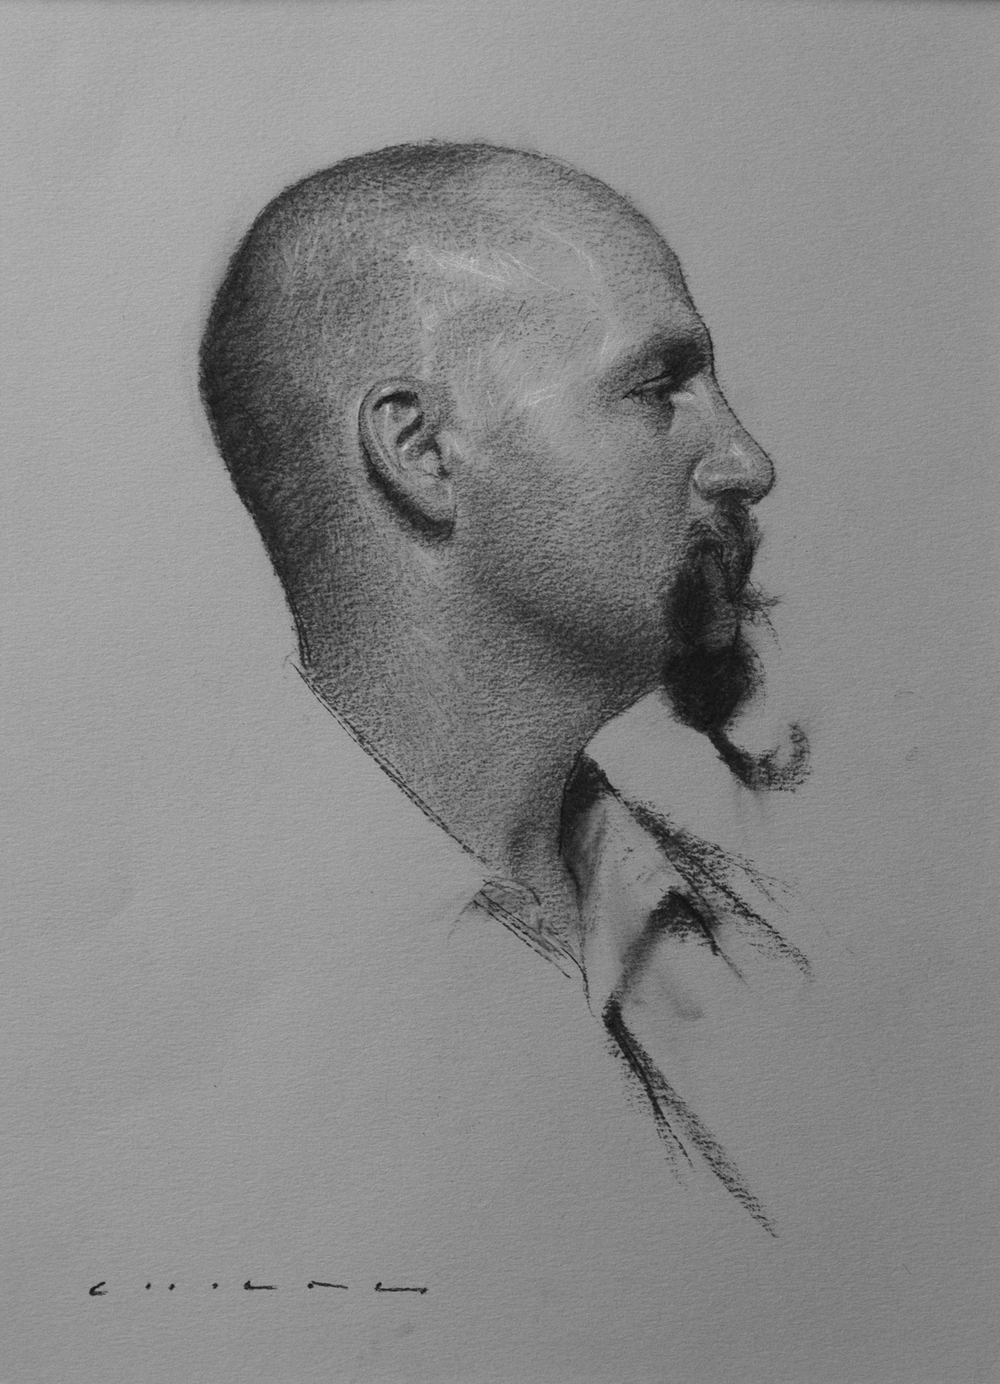 Casey Childs (b. 1974) Ivan (2015) Charcoal on paper. 13 x 9 1/2 in.